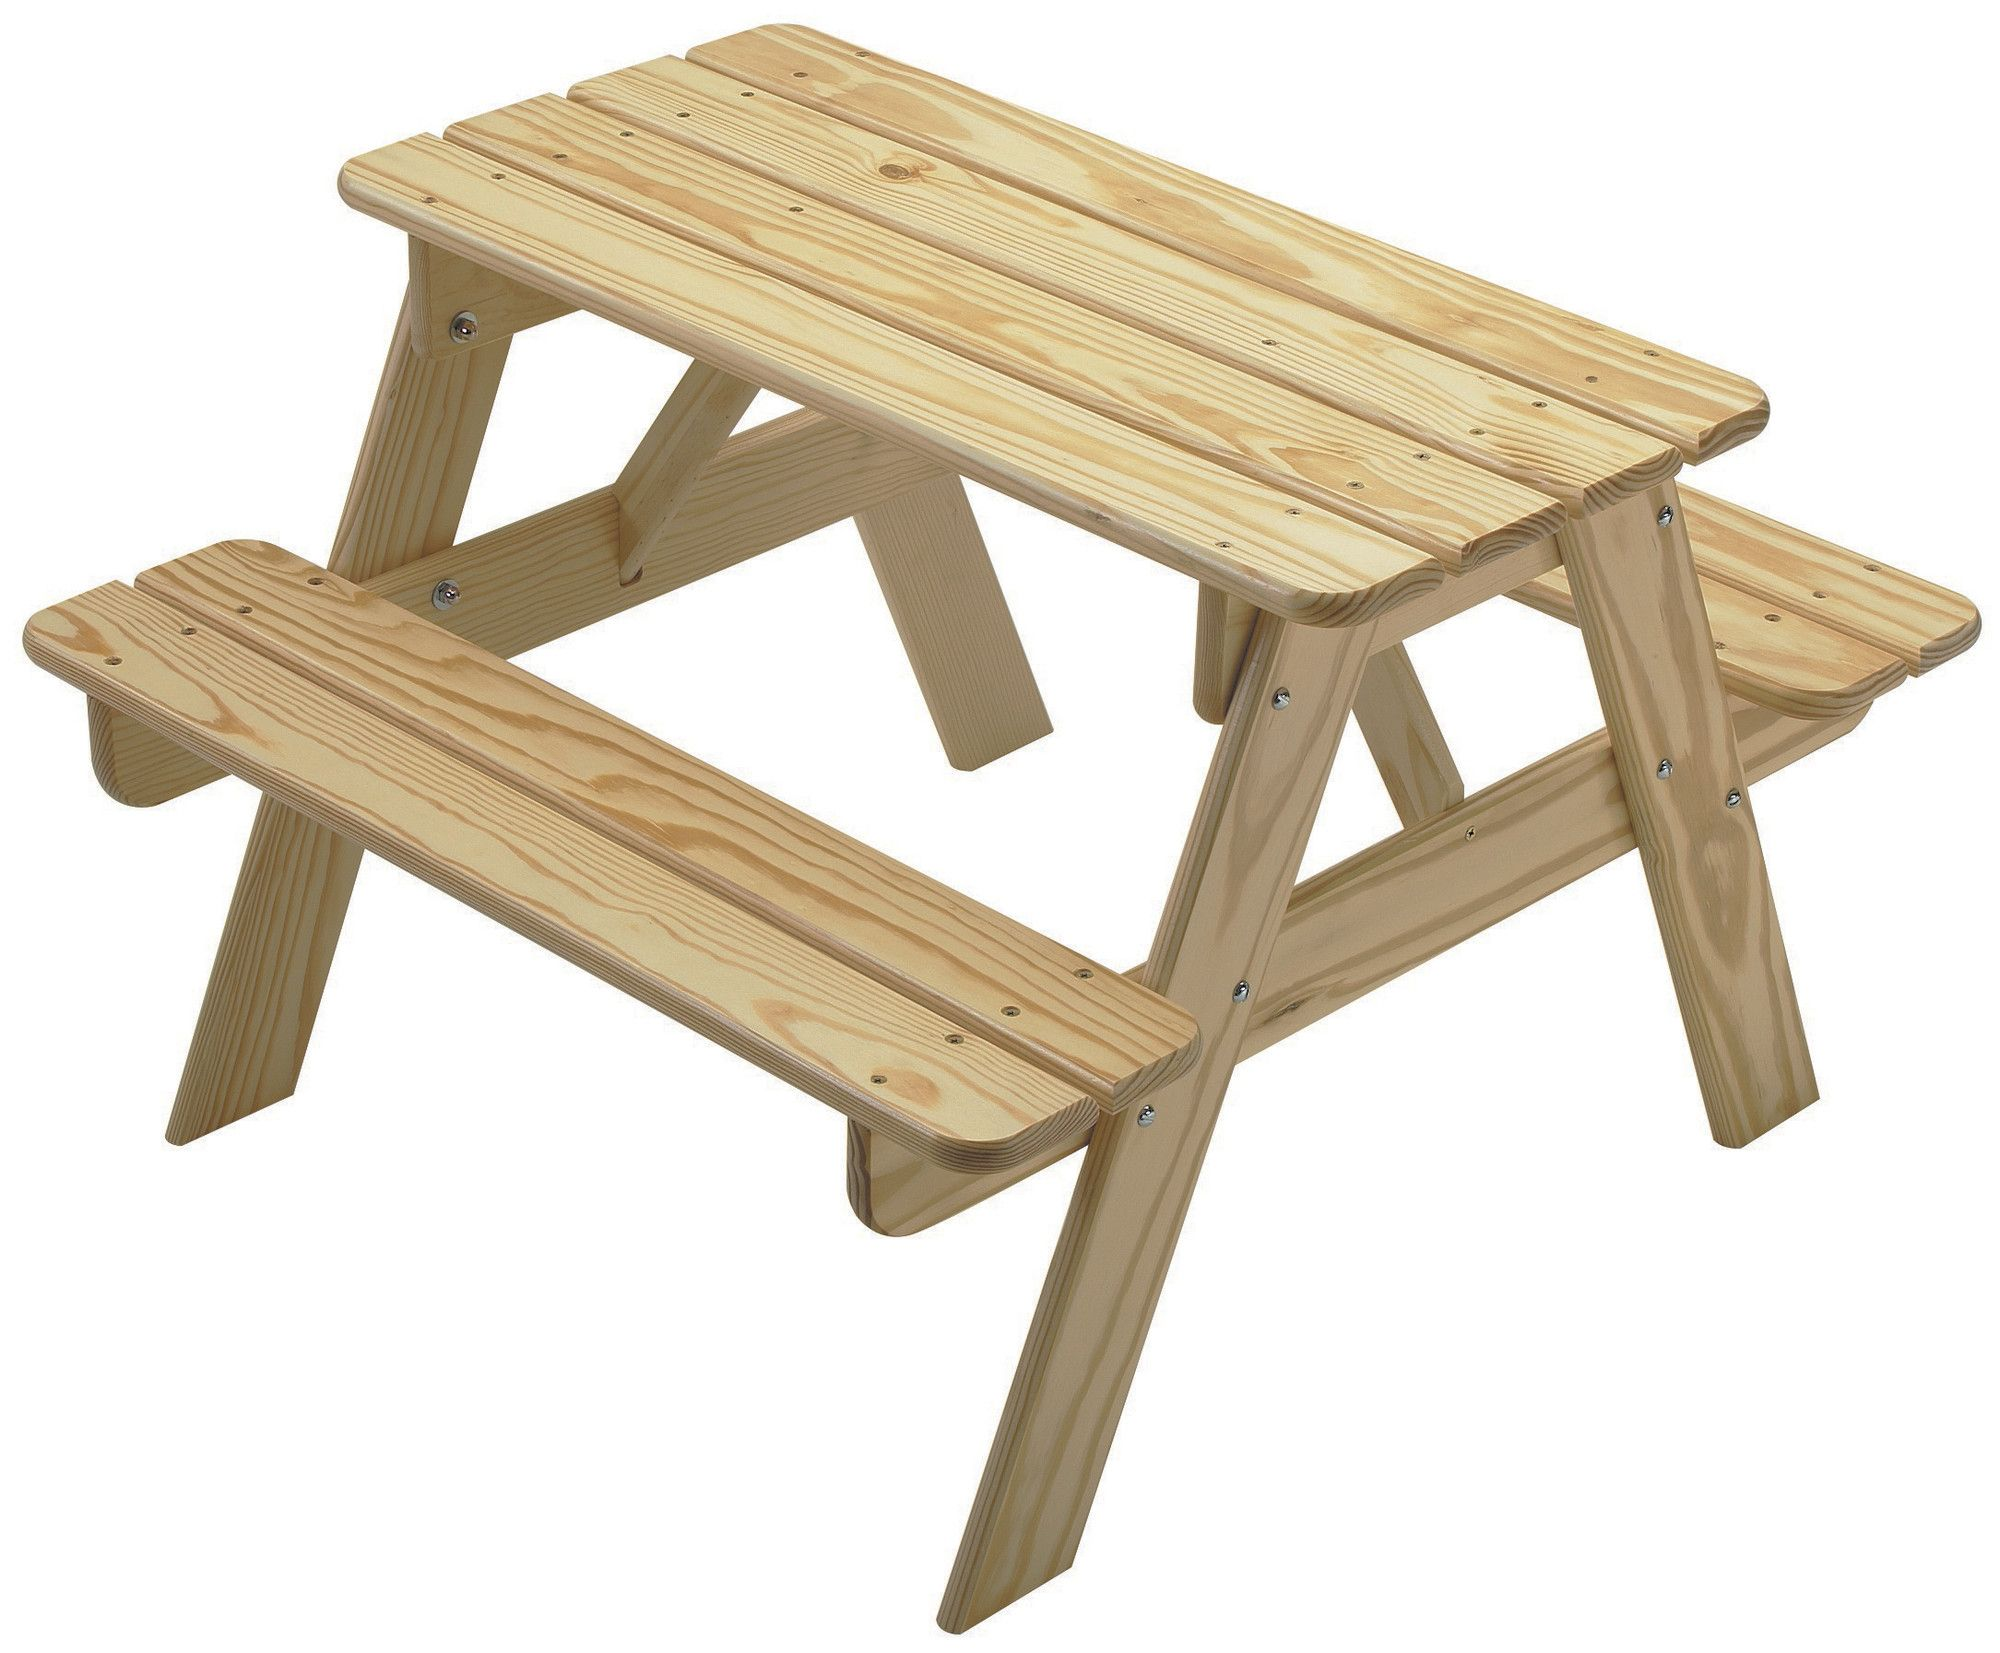 Fantastic Kids Picnic Table Table Height Top To Bottom 22 Inches Andrewgaddart Wooden Chair Designs For Living Room Andrewgaddartcom